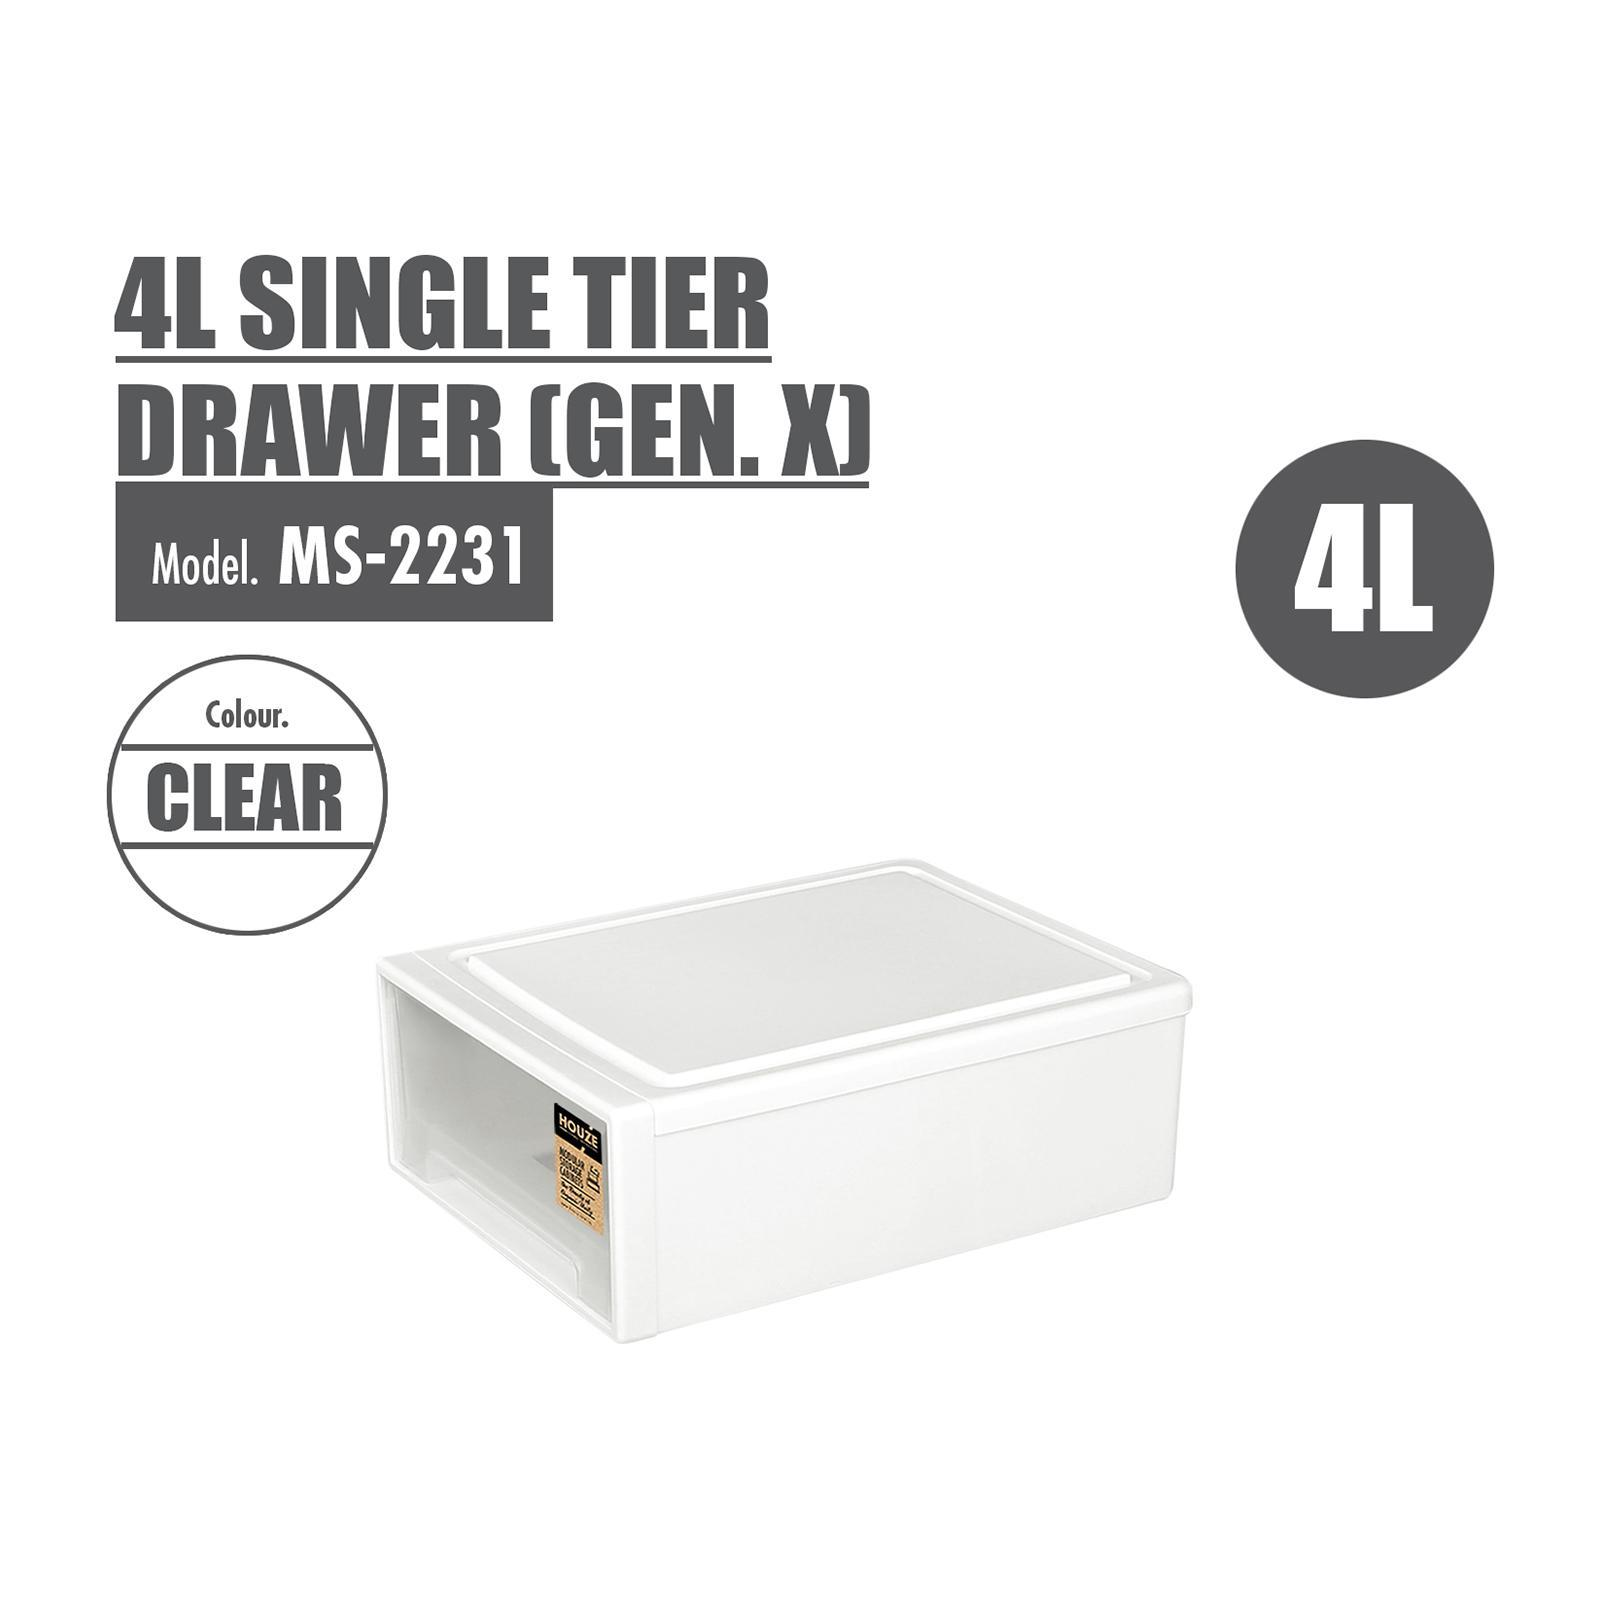 HOUZE - 4L Single Tier Drawer - Gen. X -Dim: 27.5x18x10cm - MS-2231-CLEAR